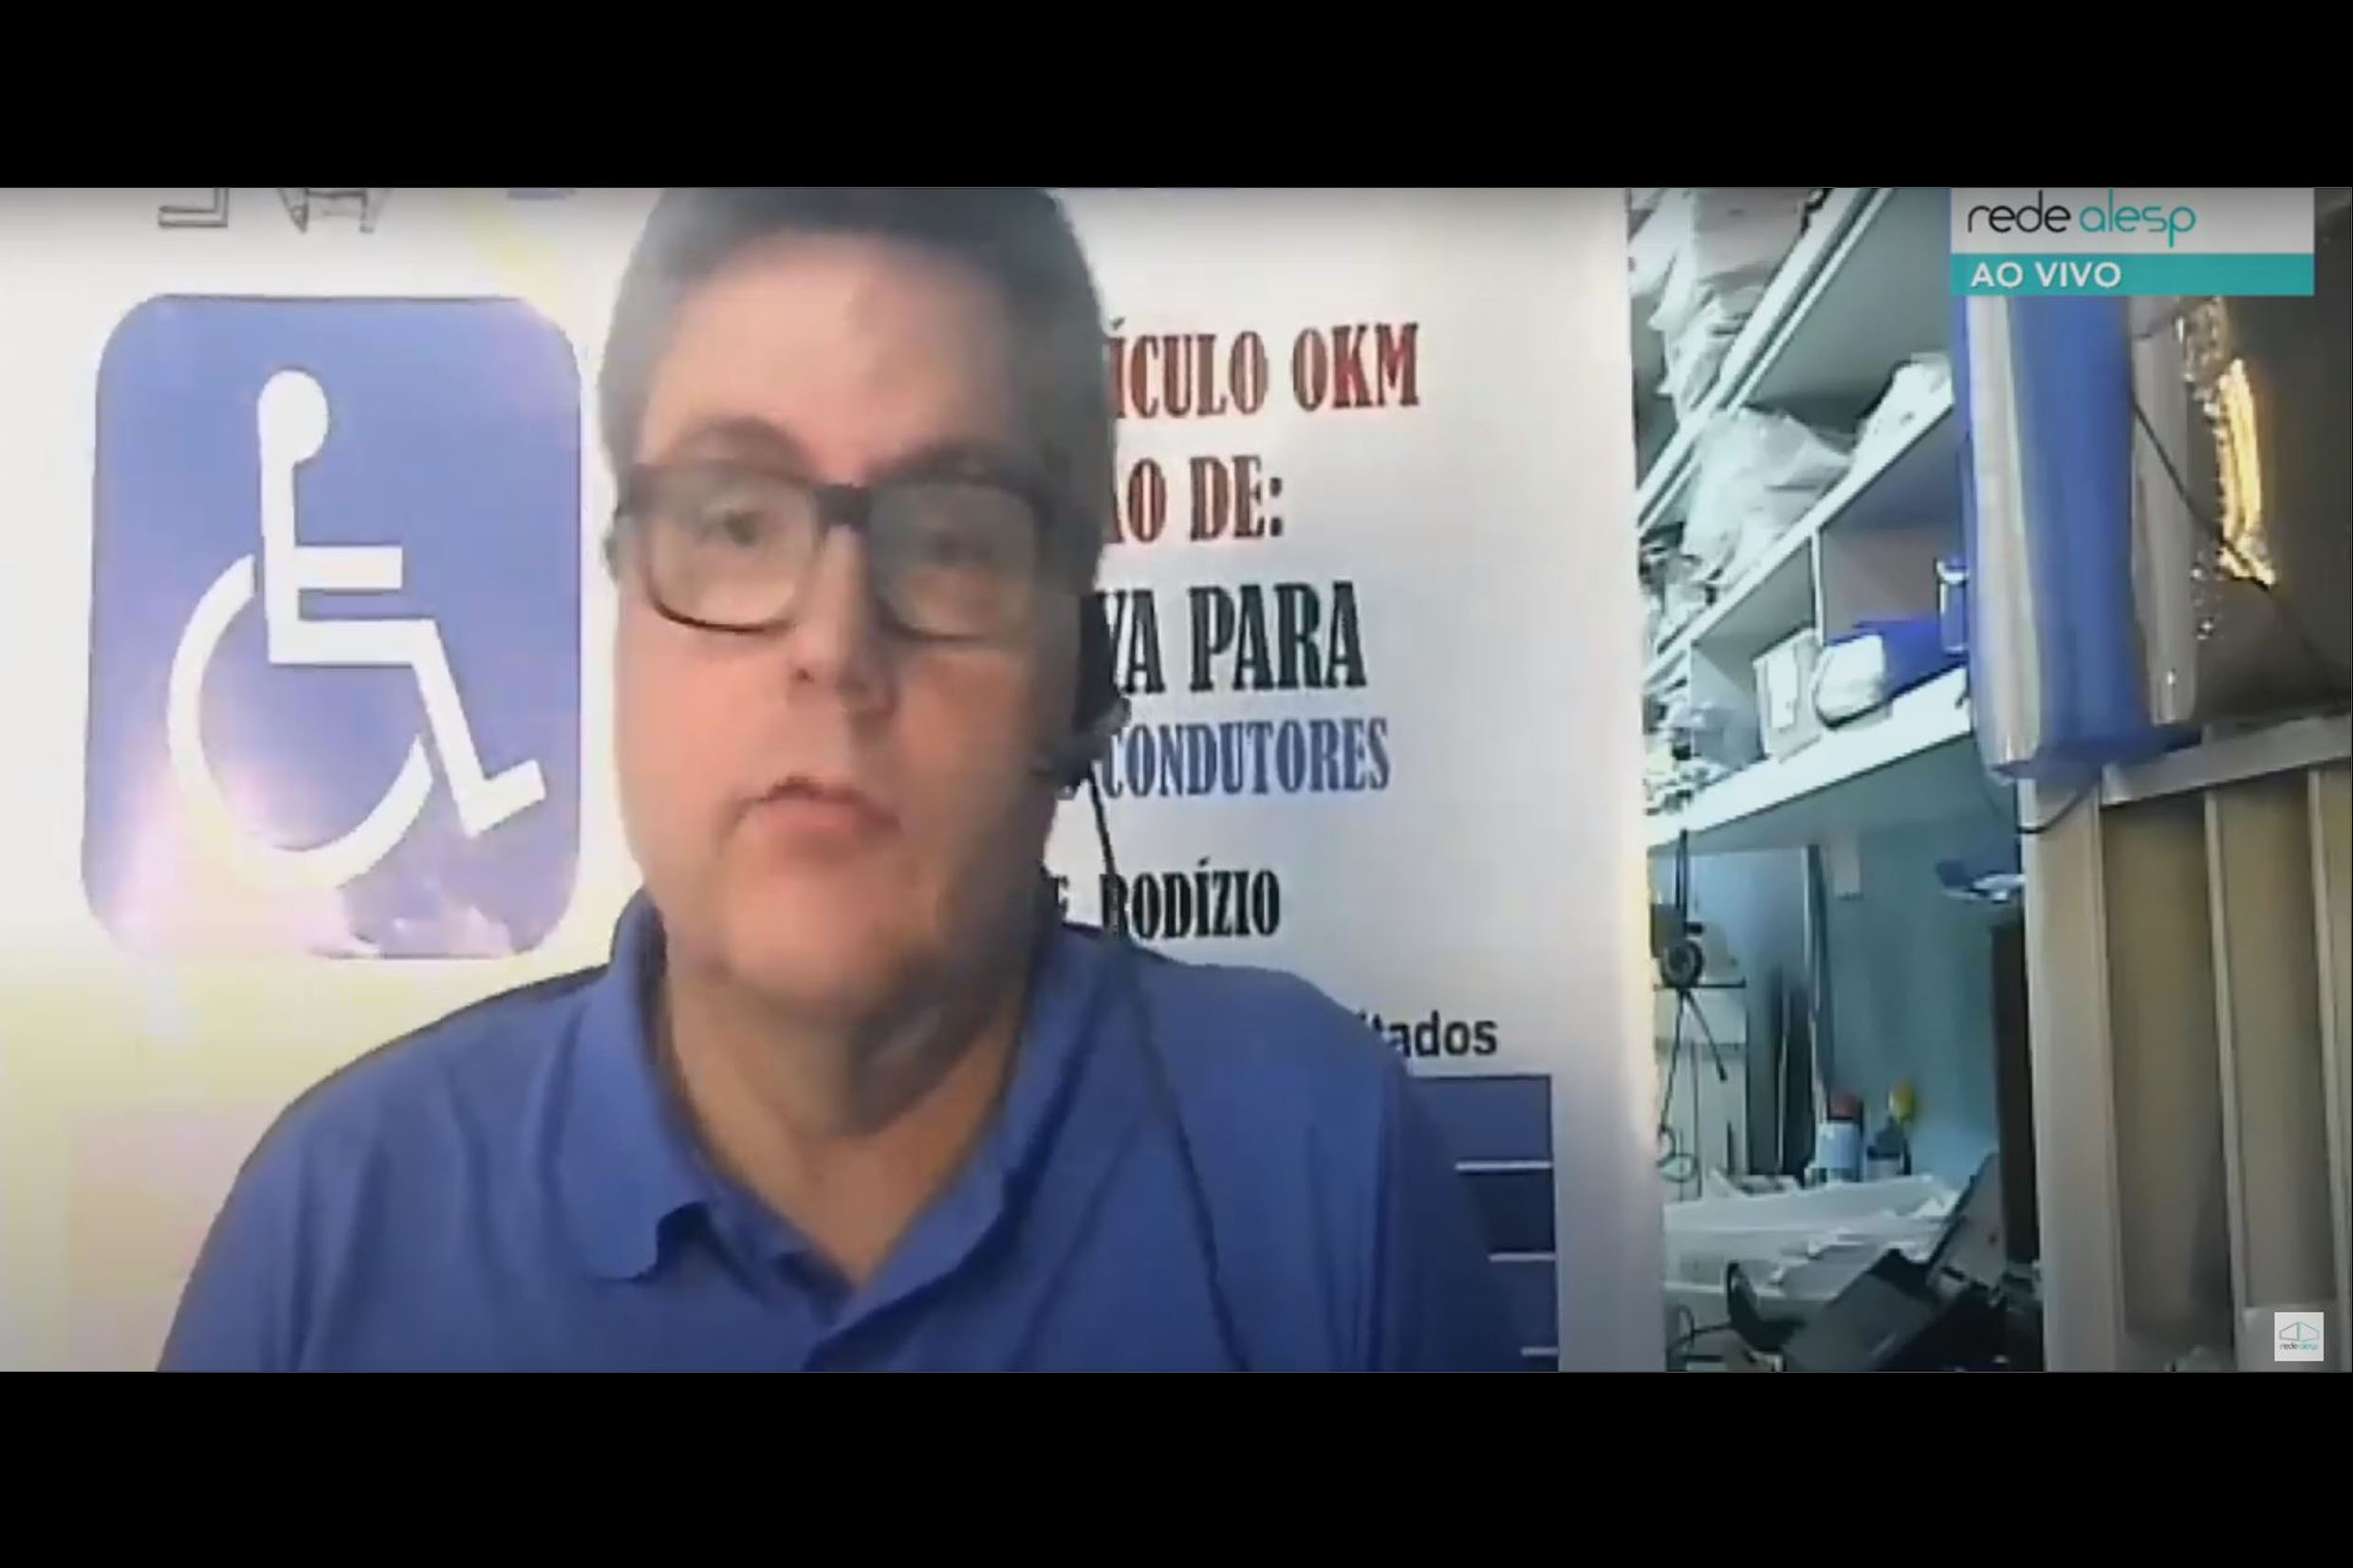 Itamar Garcia<a style='float:right' href='https://www3.al.sp.gov.br/repositorio/noticia/N-02-2021/fg261135.jpg' target=_blank><img src='/_img/material-file-download-white.png' width='14px' alt='Clique para baixar a imagem'></a>